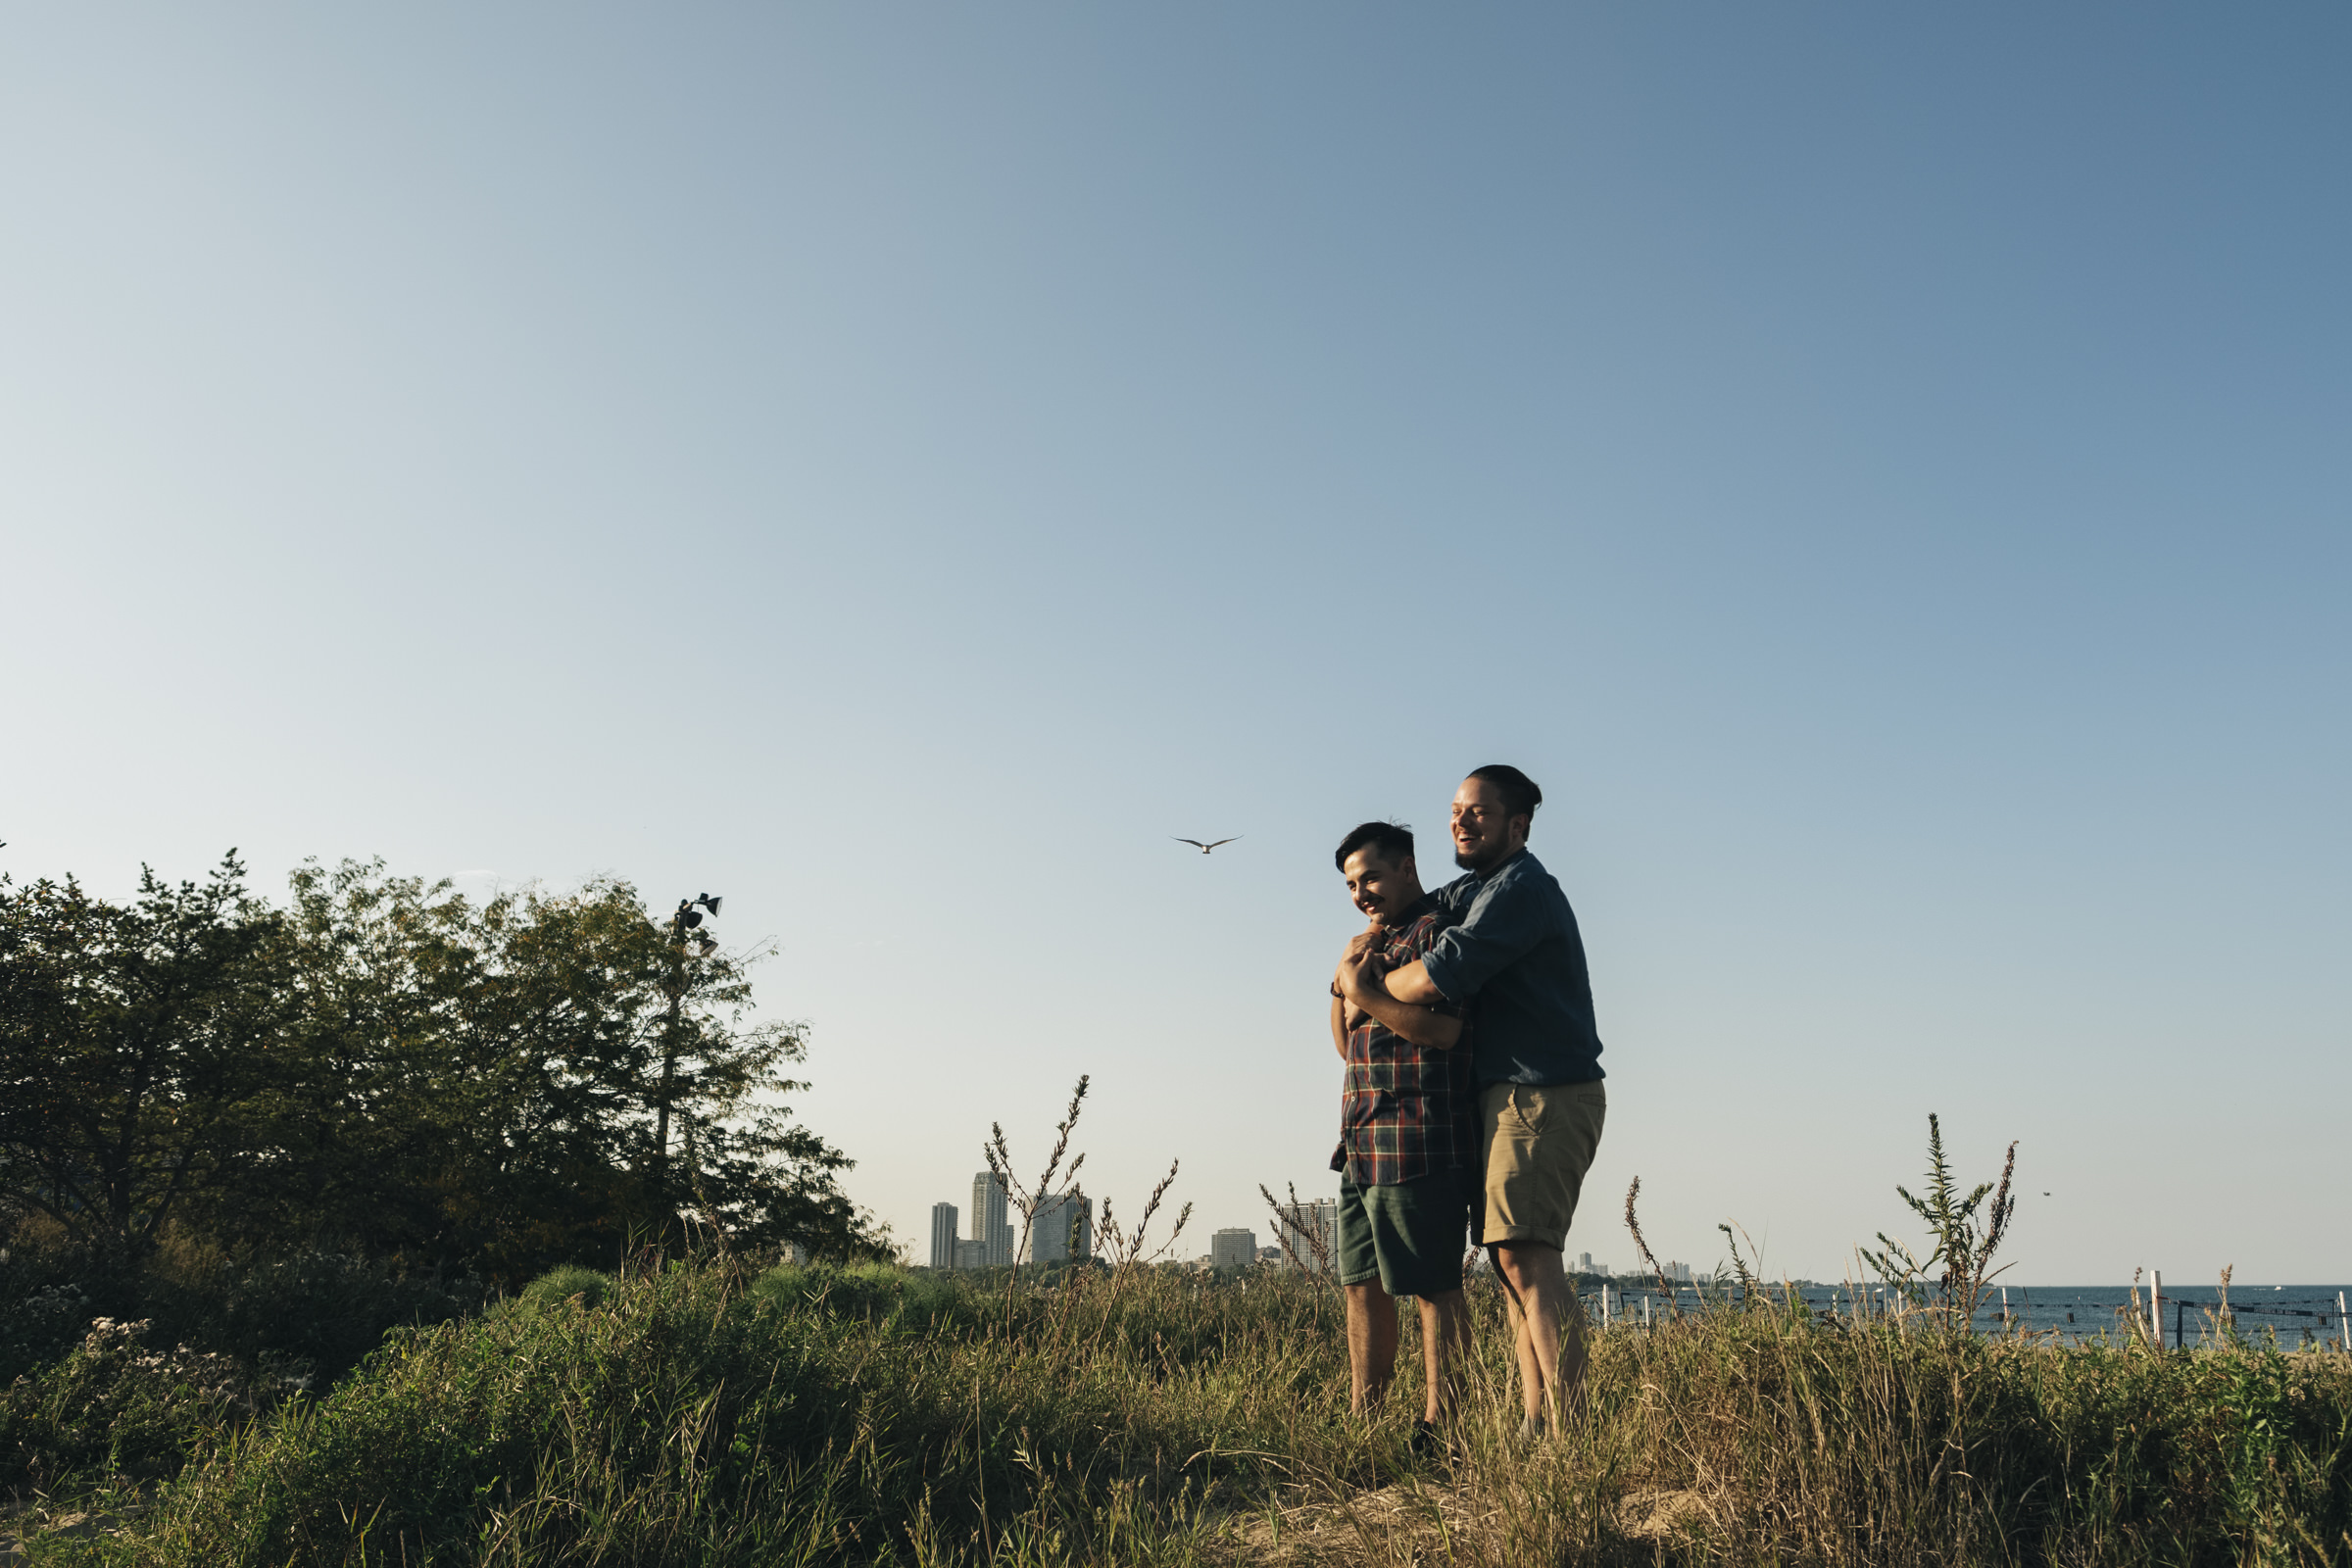 Cute couple laughs on the beaches of Lake Michigan in Illinois